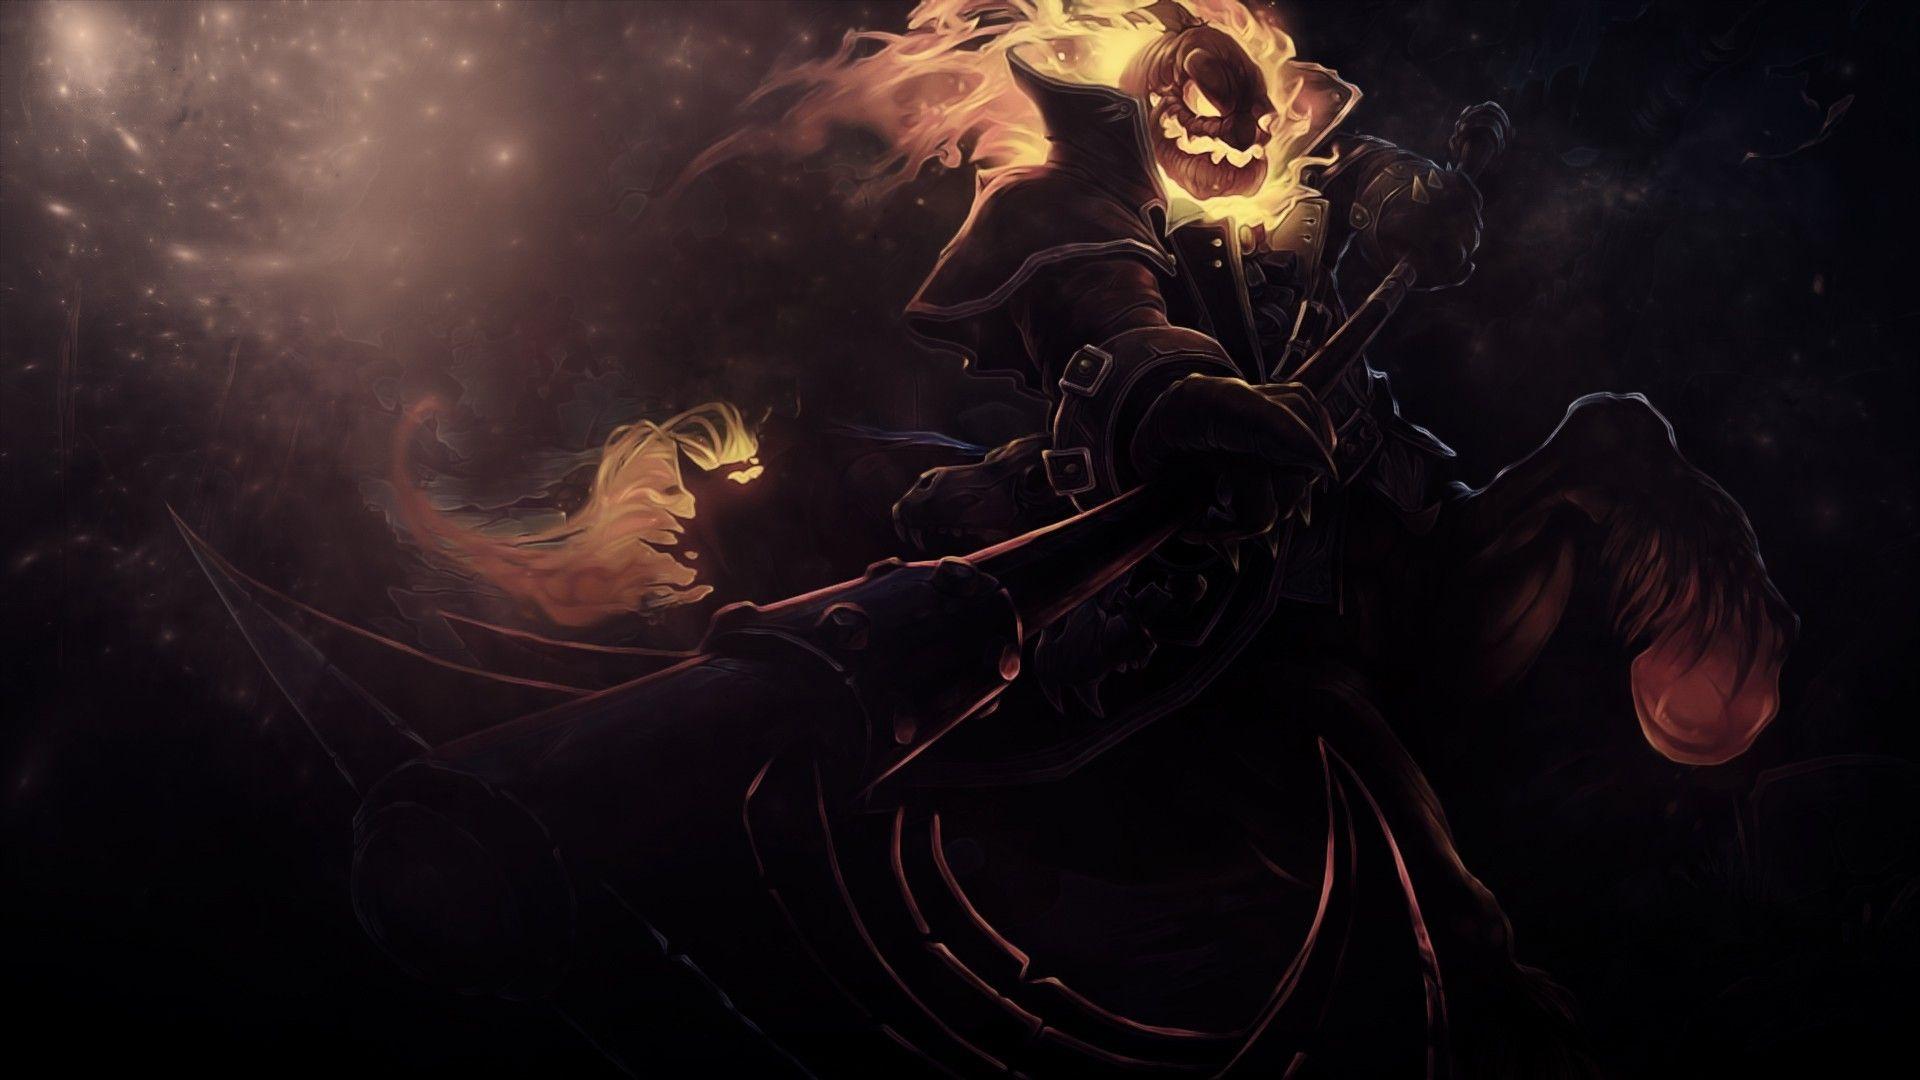 Hecarim Fantasy Art Halloween Wallpaper League Of Legends